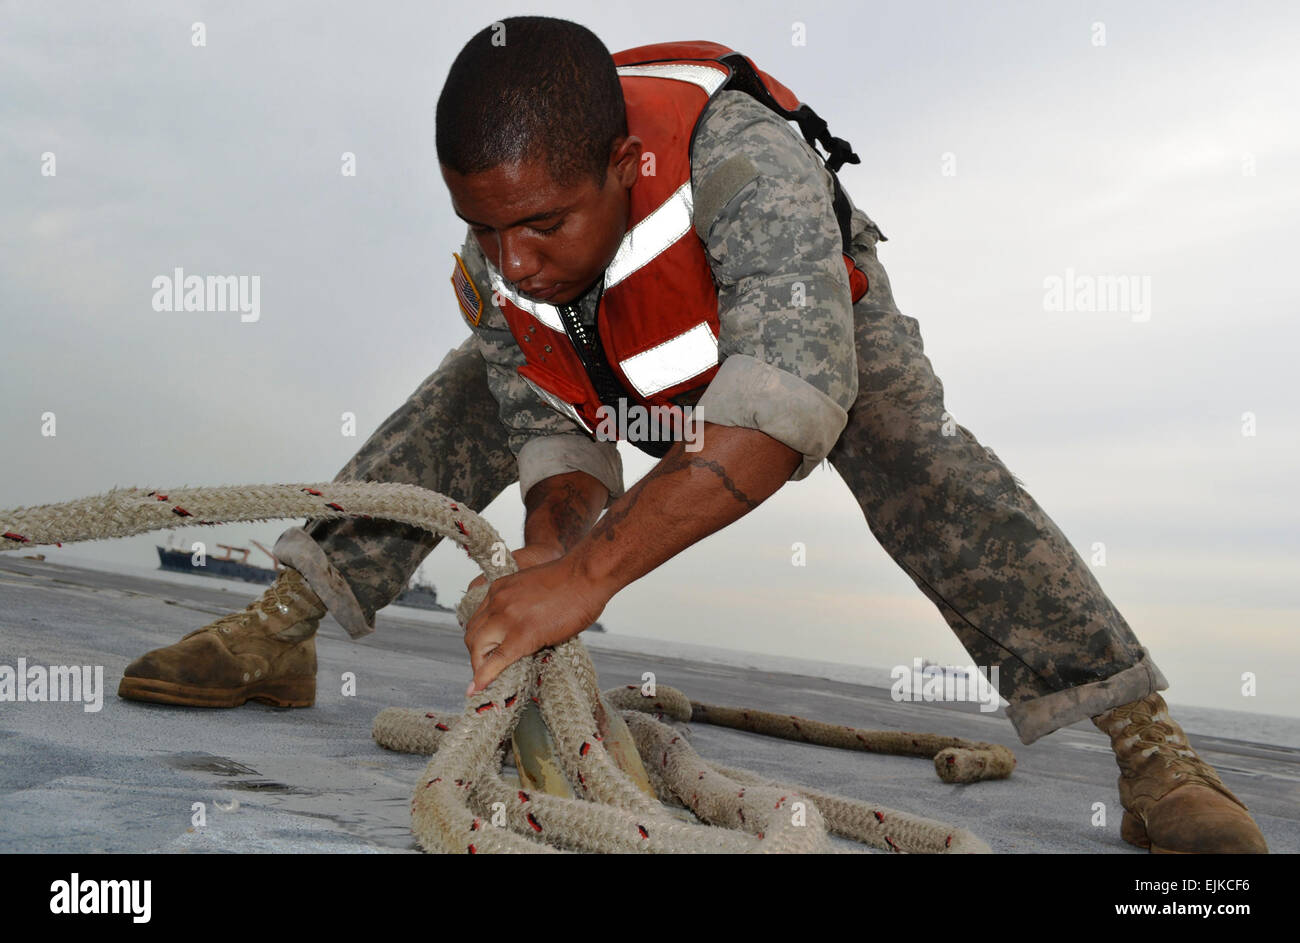 Pfc. Emmanuel Lopez, a watercraft operator assigned to the 331st Transportation Company, 10th Transportation Battalion, - Stock Image